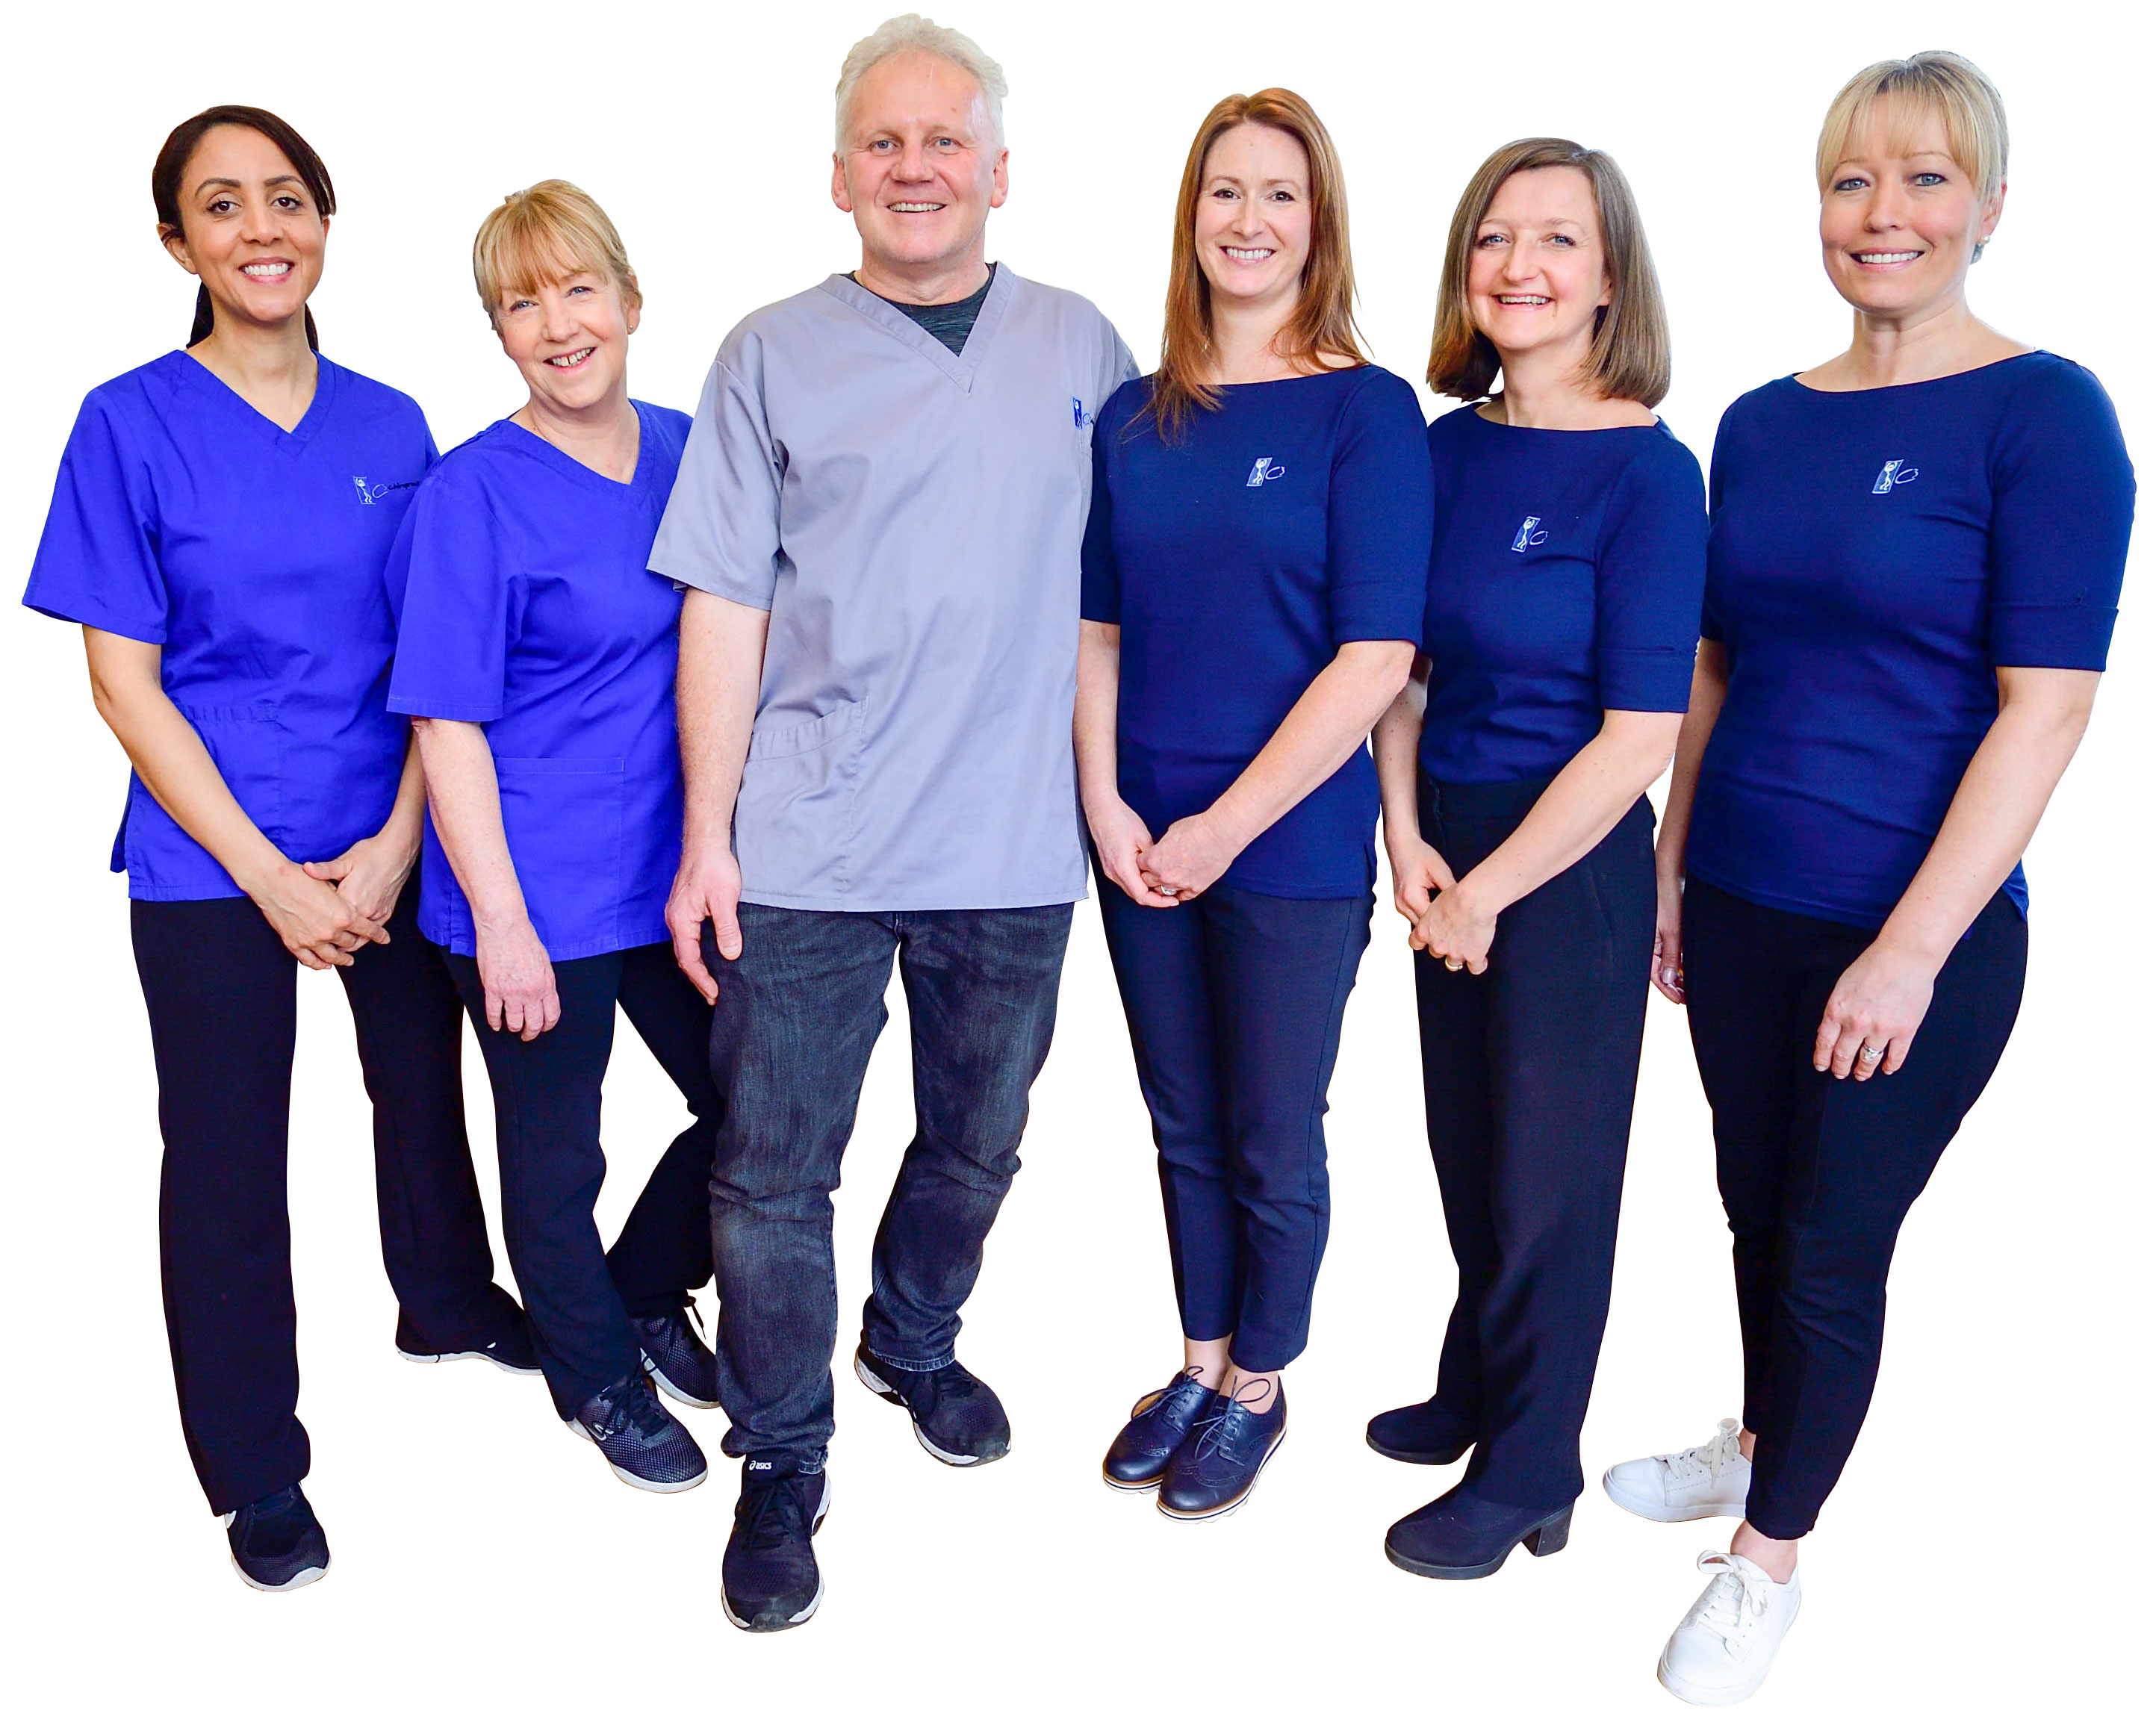 The C3 Chiropractic Team of chiropractors and podiatrists